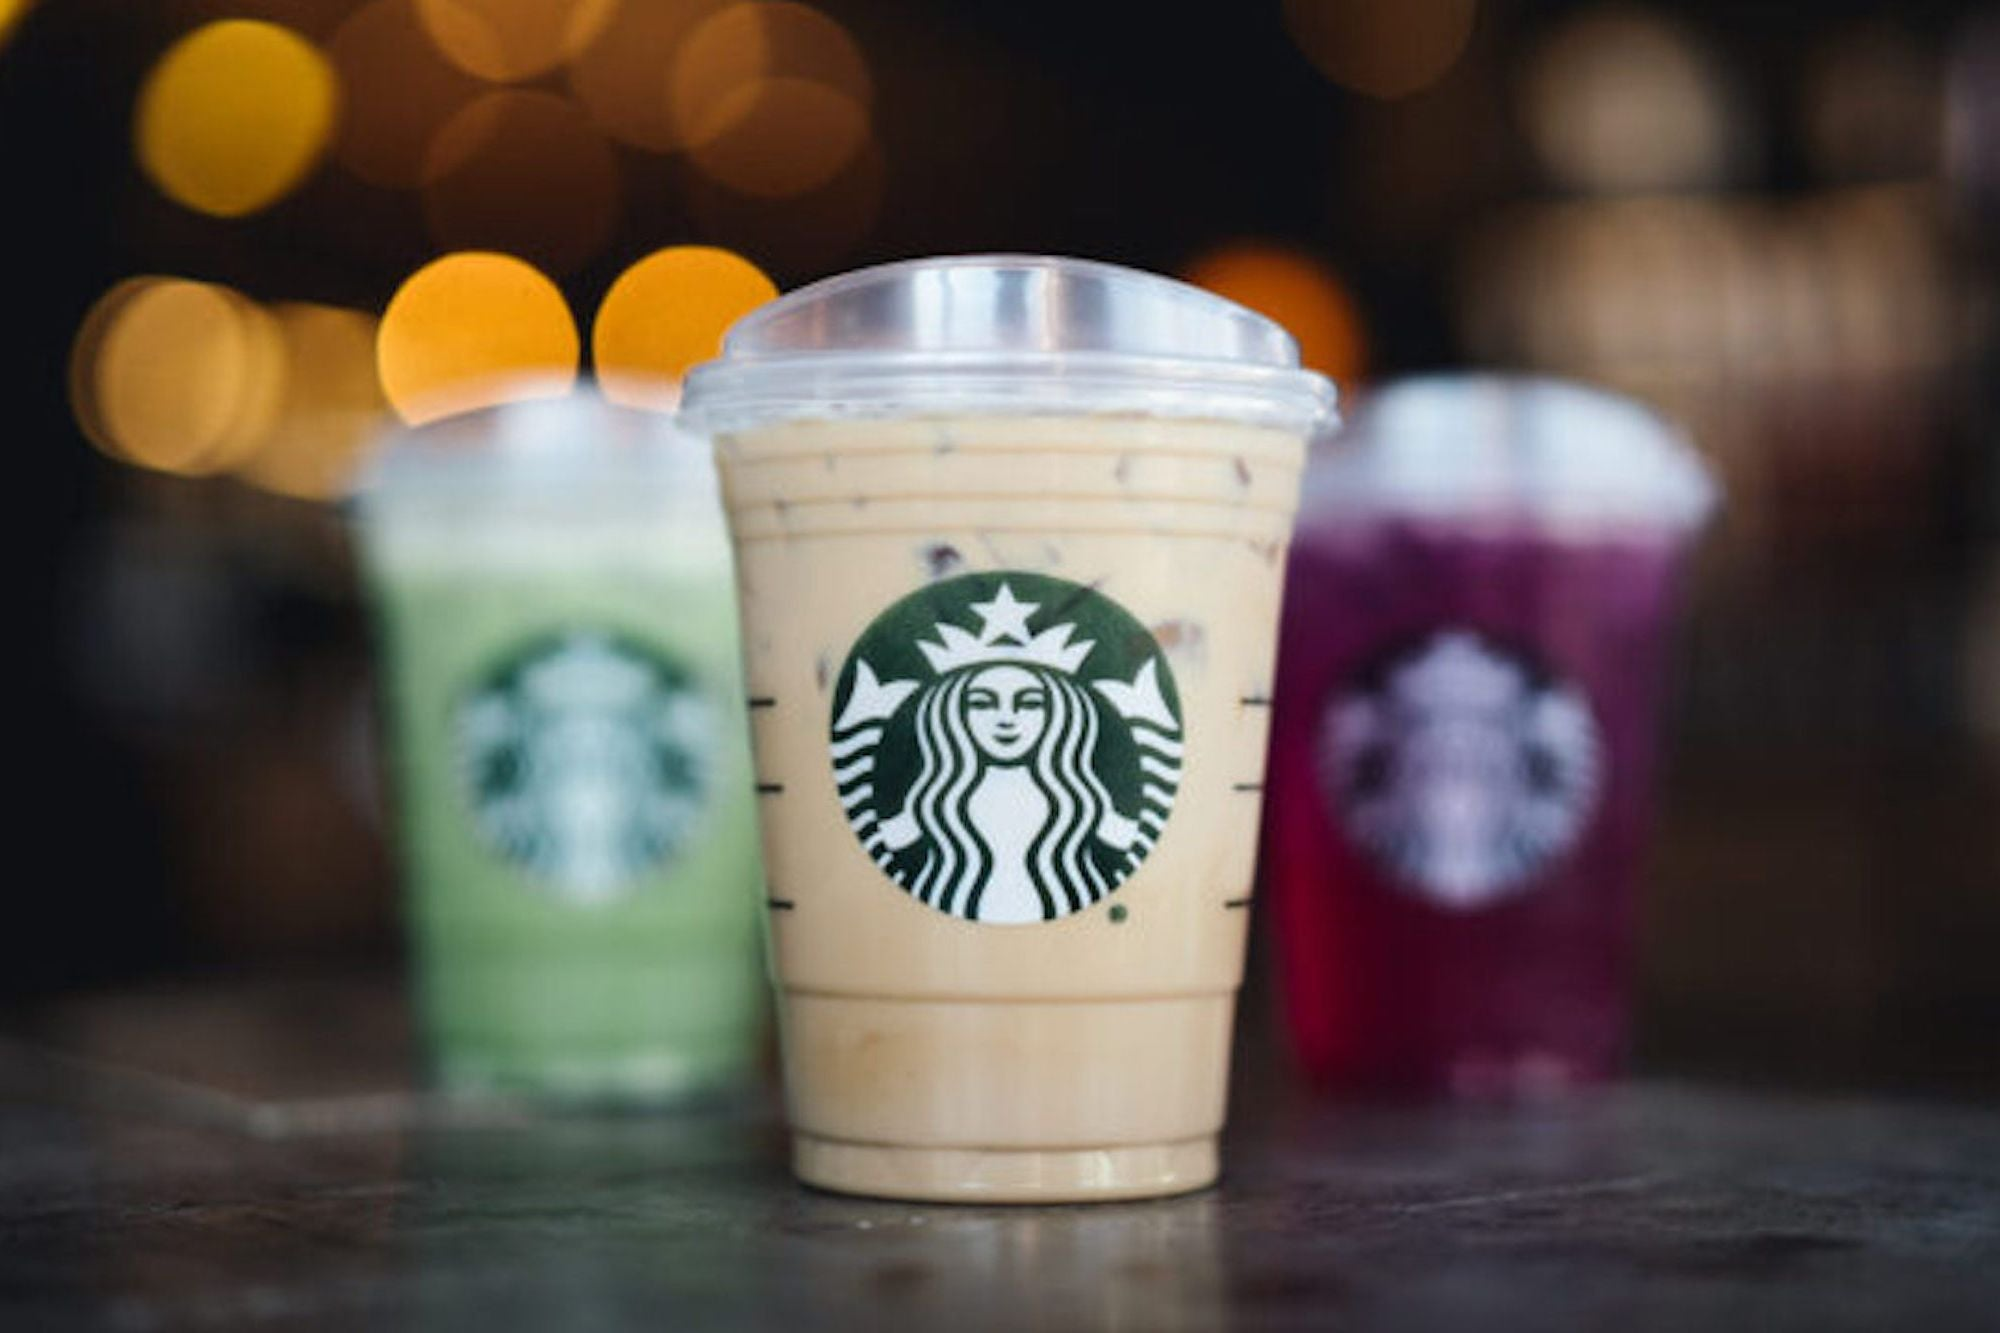 This Starbucks Executive Shares How Your Company Can Make a Positive Social Impact